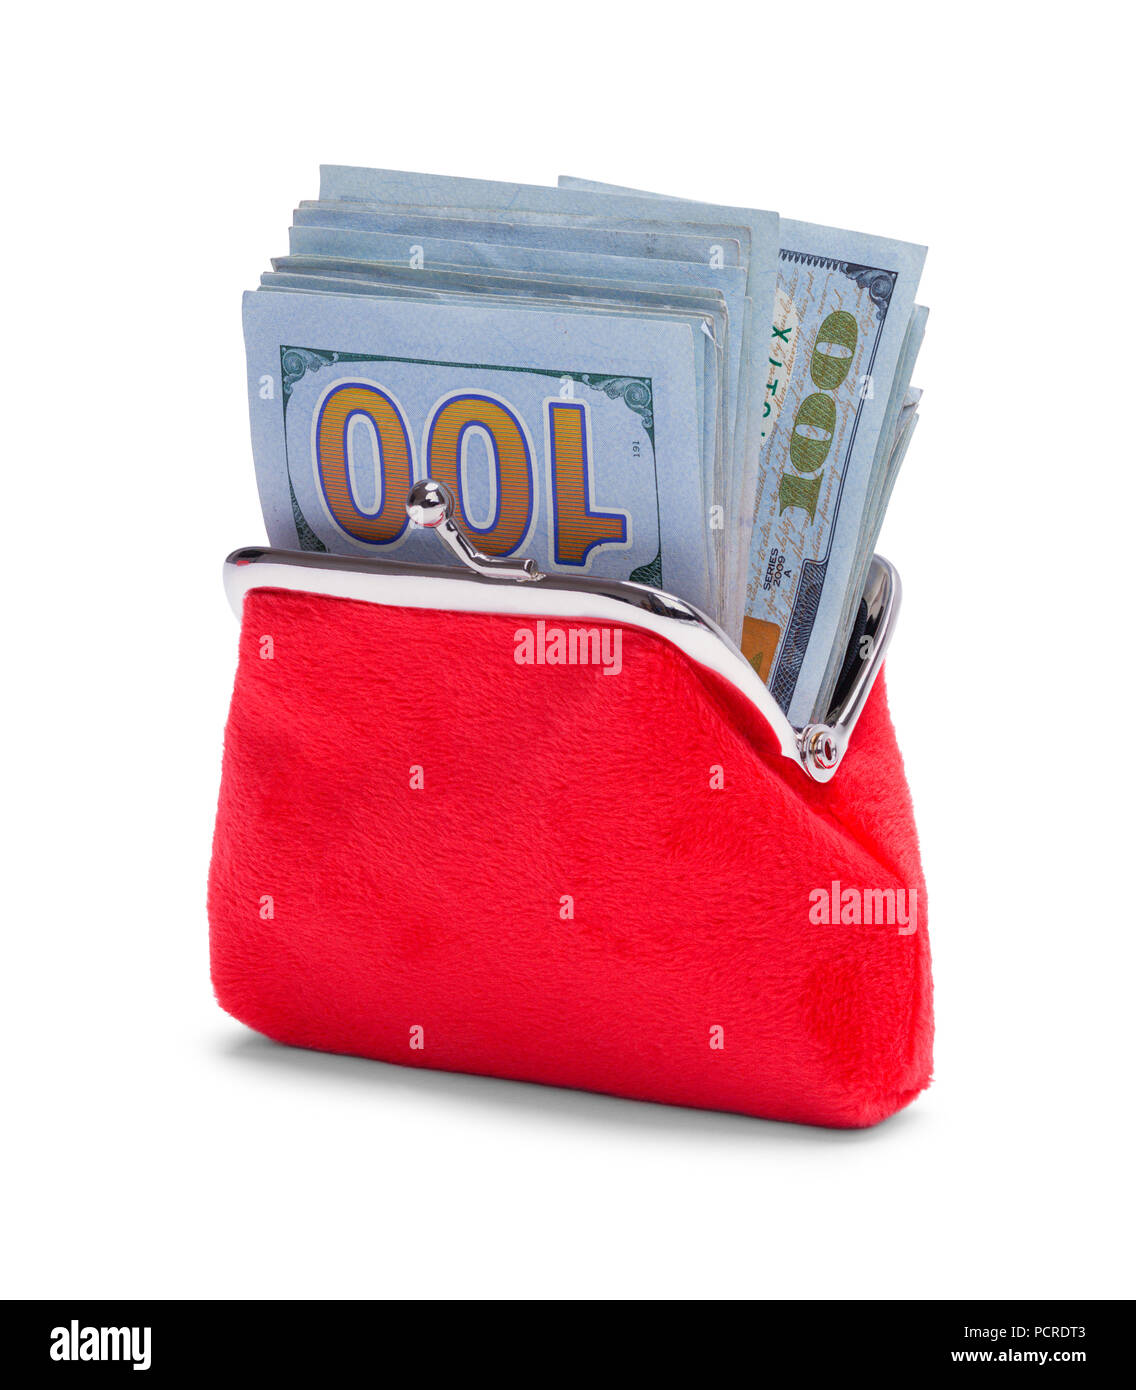 Red Coin Purse Stuffed Full of Money Isolated on White Background. - Stock Image